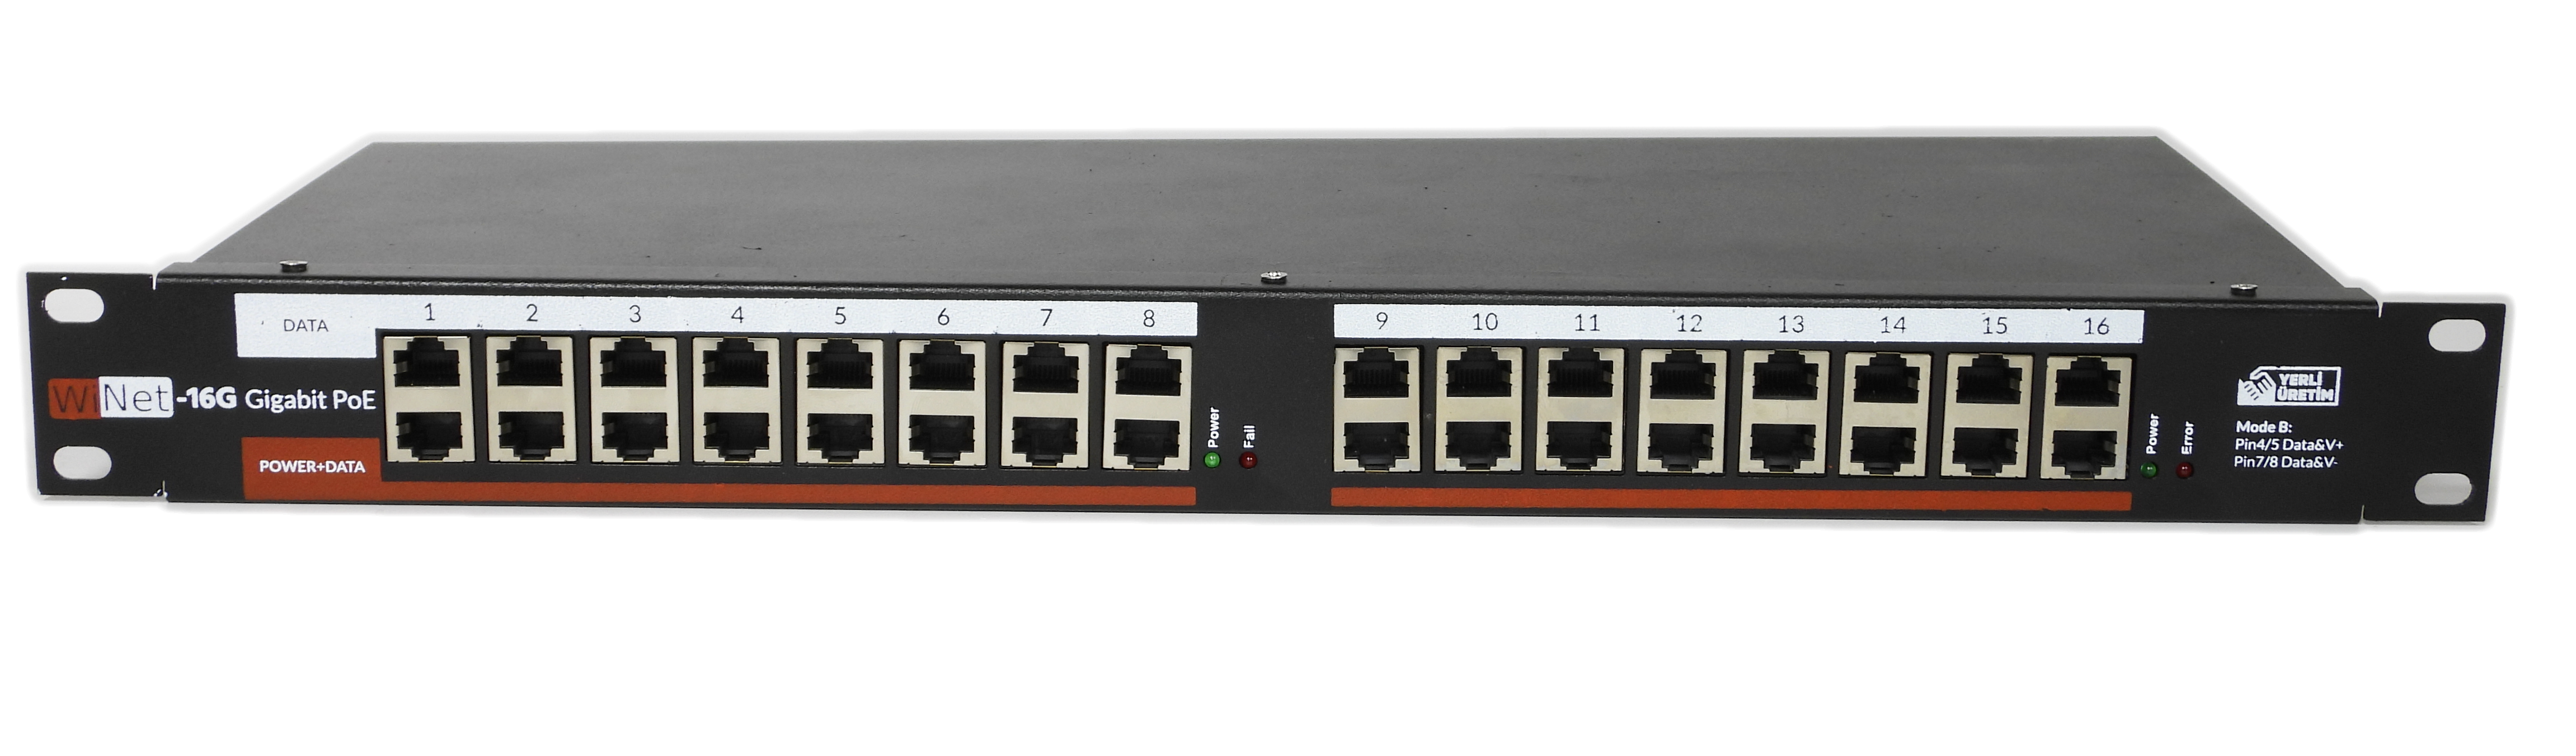 PANEL-16P-GB-24V WINET 16 PORT GIGABIT POE PANEL INJECTOR - 24V HAZIR MODEL